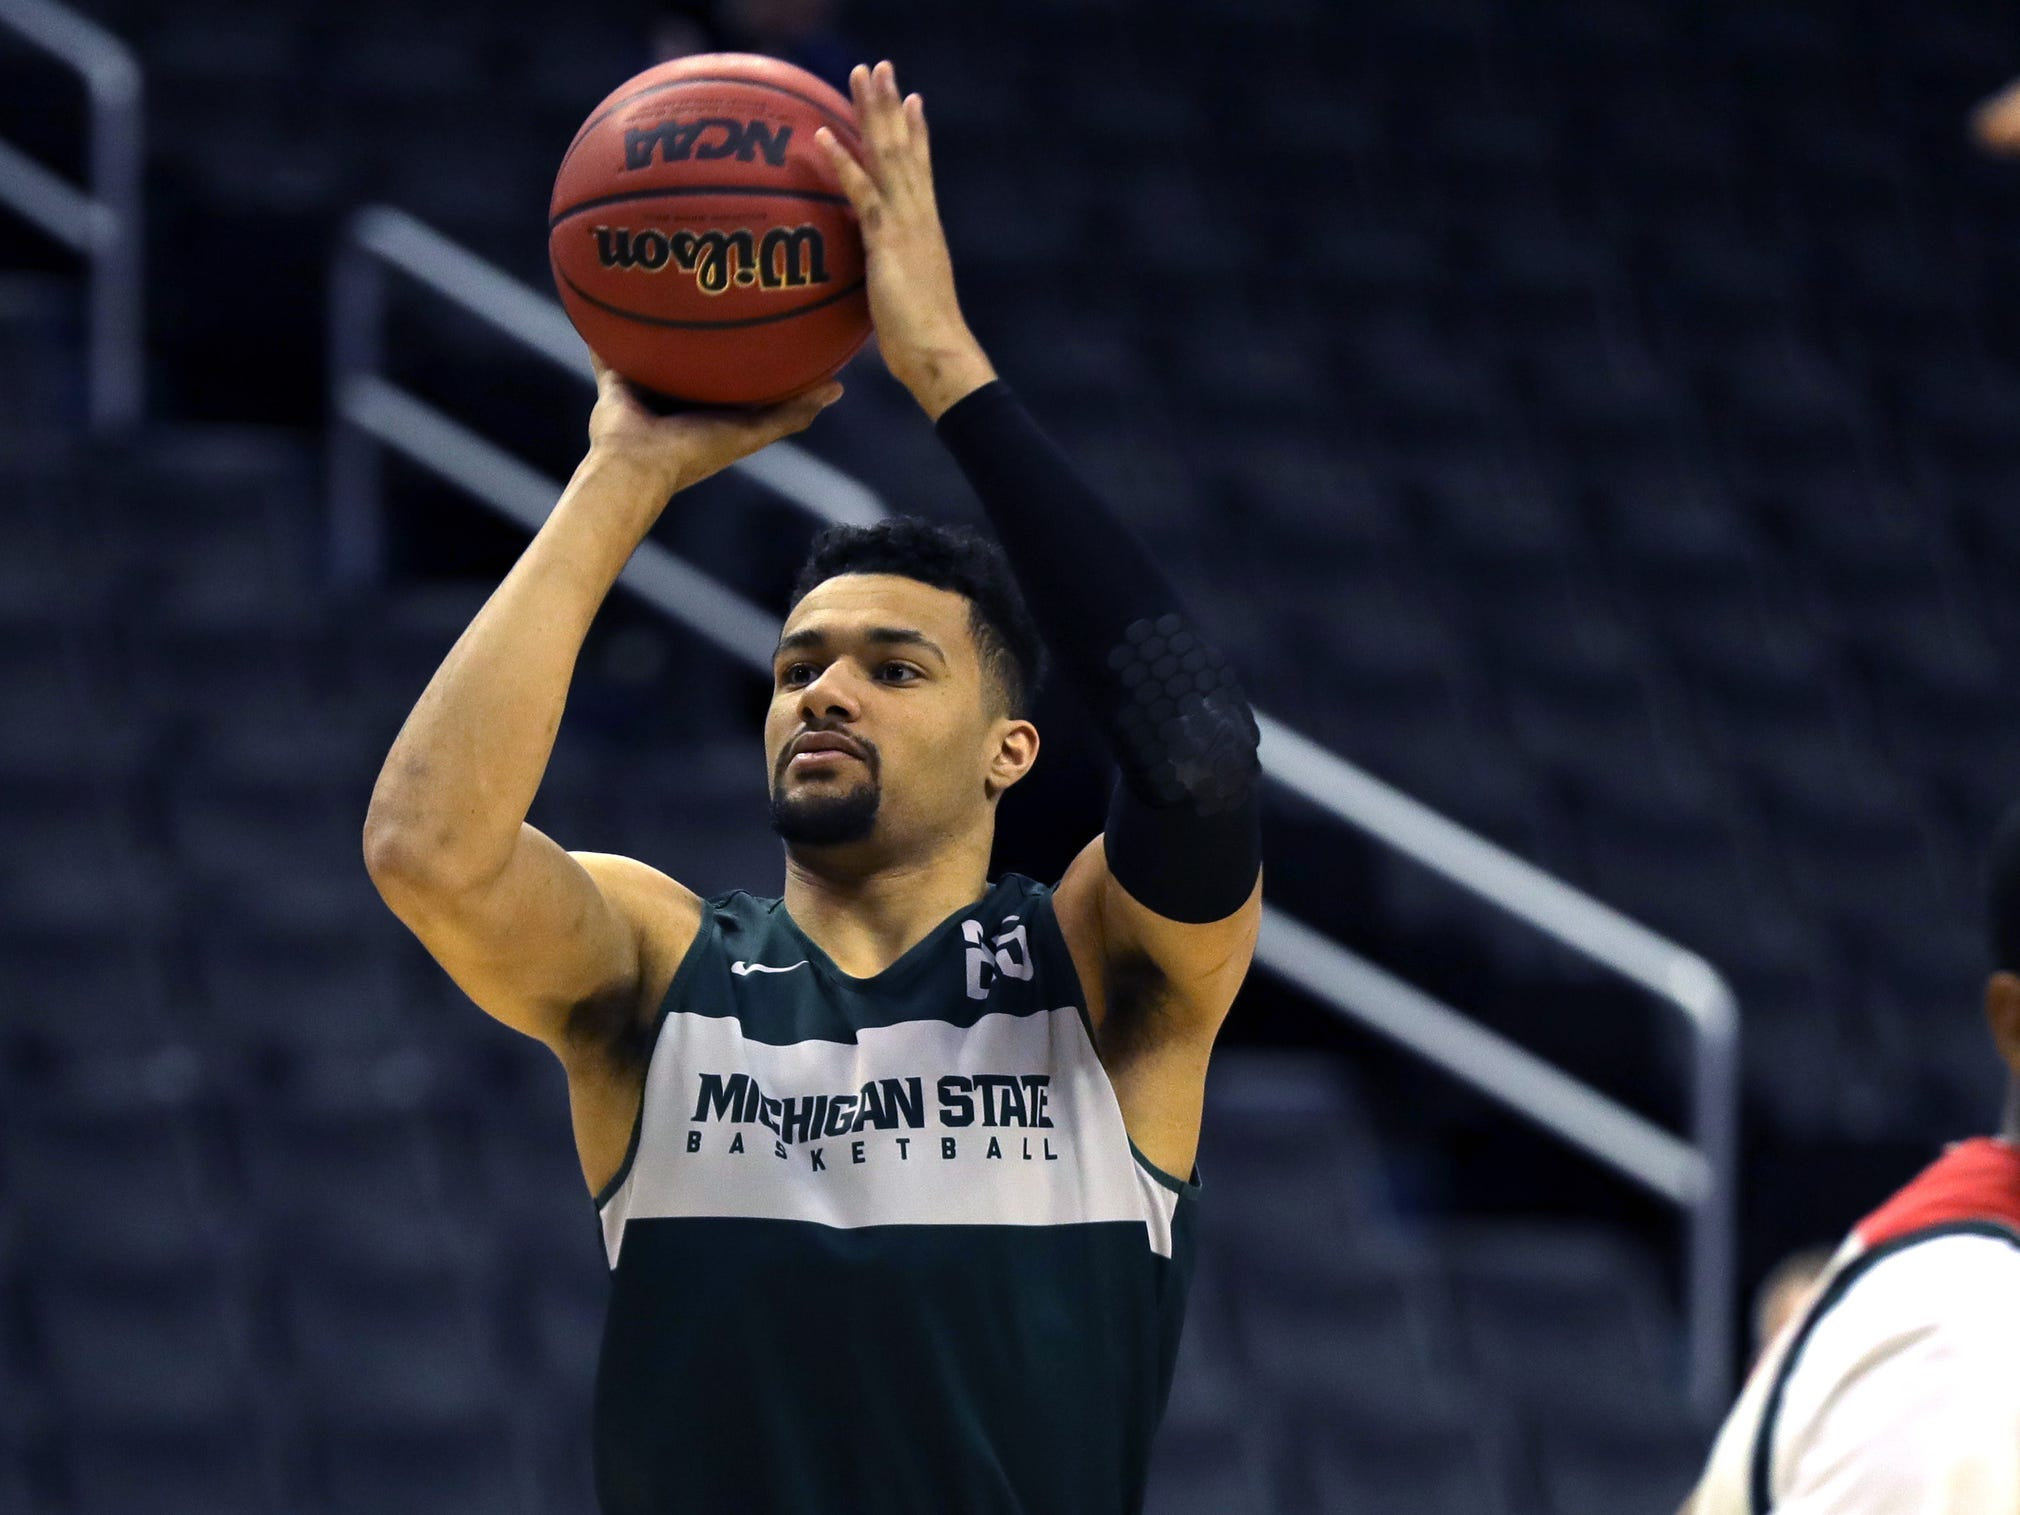 Michigan State forward Kenny Goins practices for their Sweet 16 game against LSU, Thursday, March 28, 2019 at the Capital One Arena in Washington, D.C.